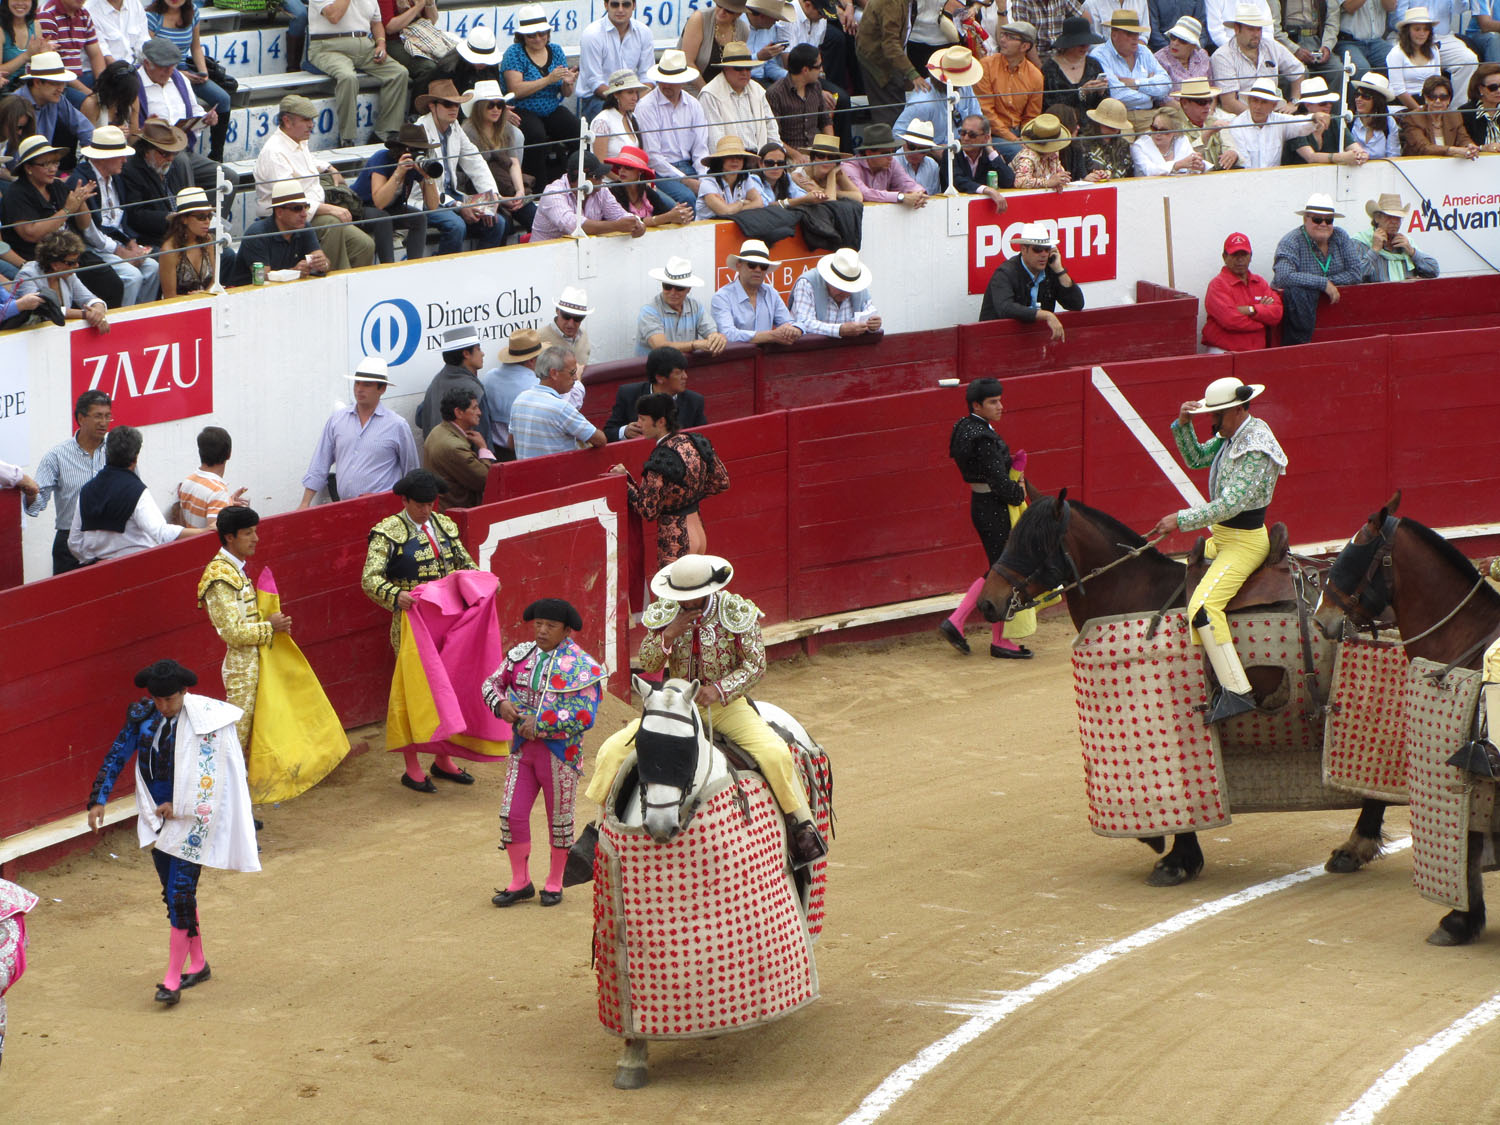 Ecuador-Quito-Bullfight-Warmup